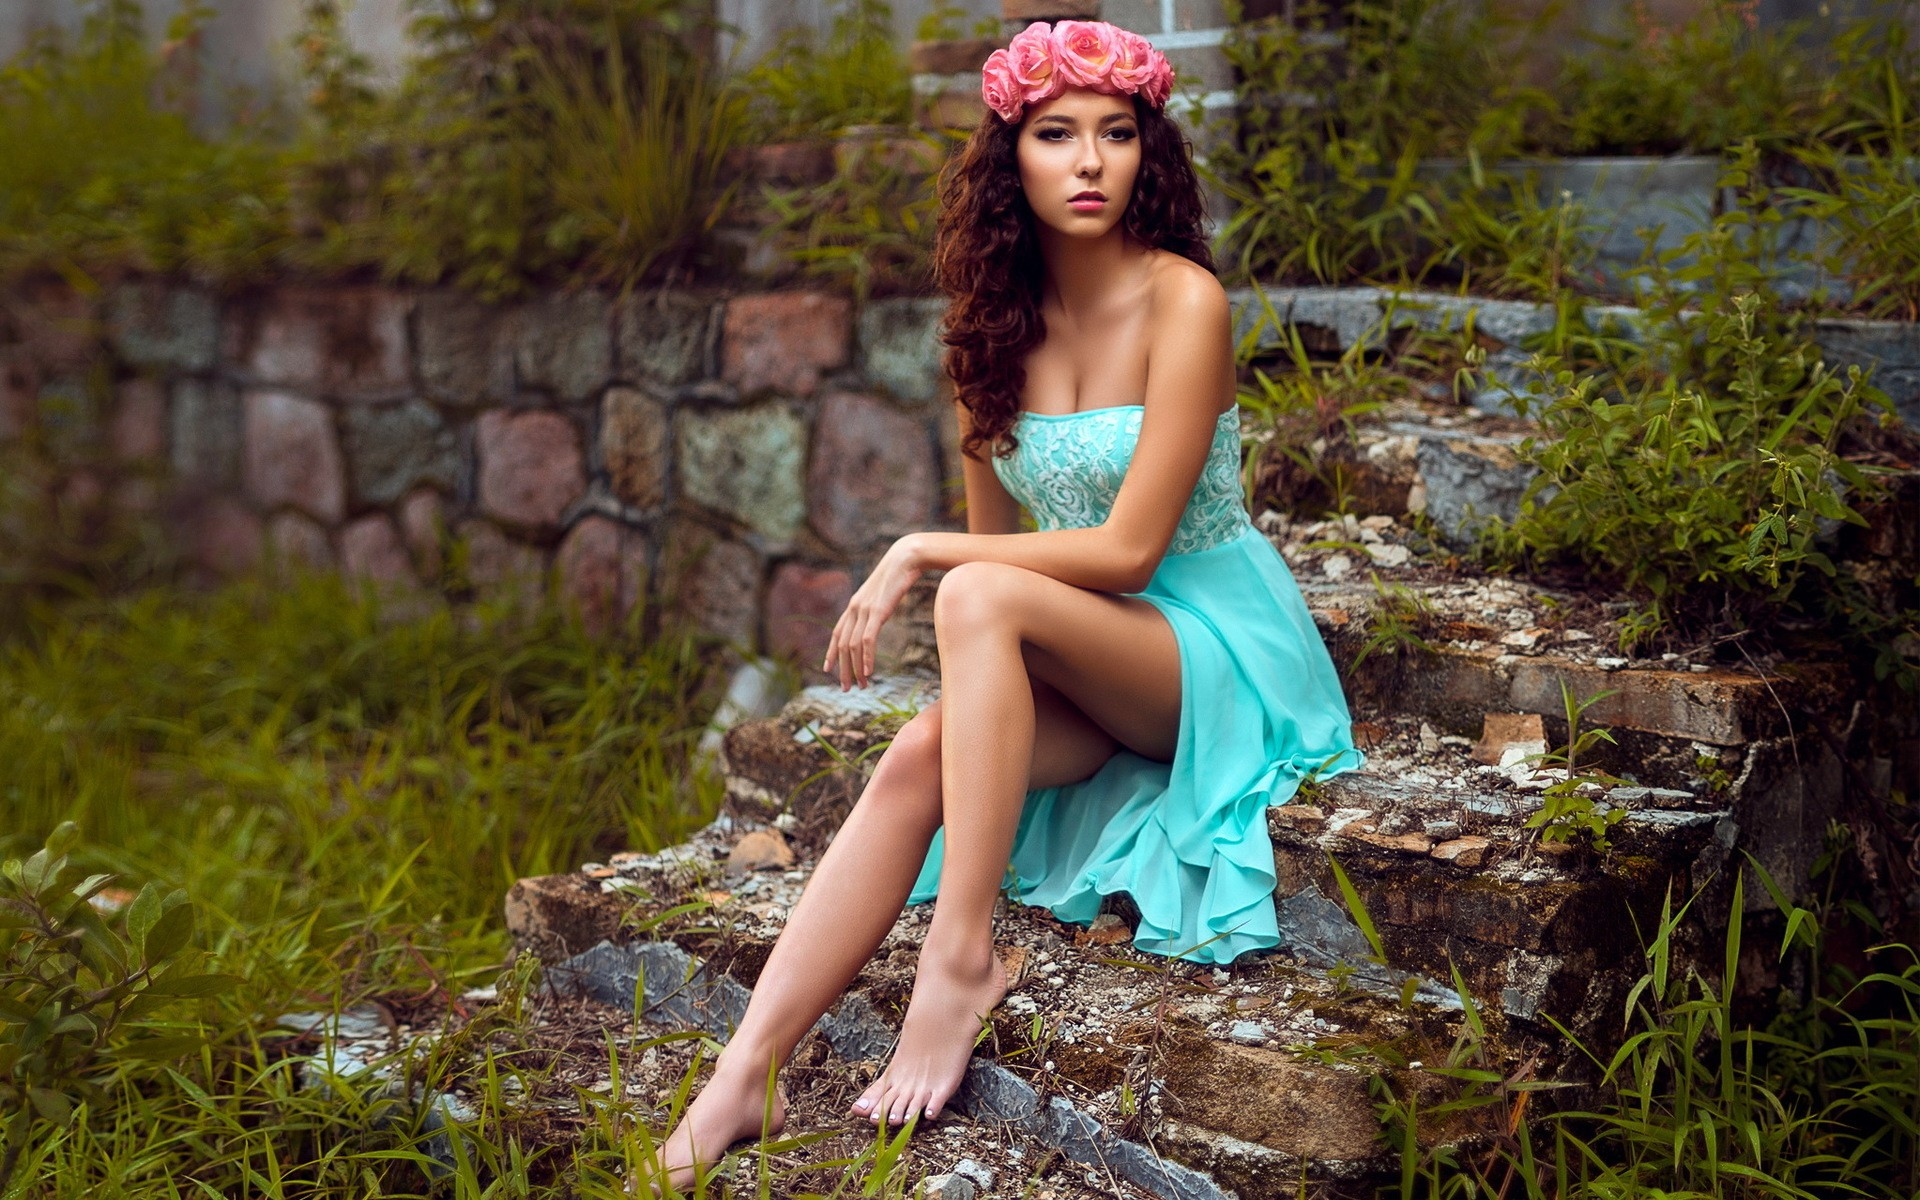 Sweet Cute Wallpapers 240x320 Women Model Sitting Hd Photography 4k Wallpapers Images